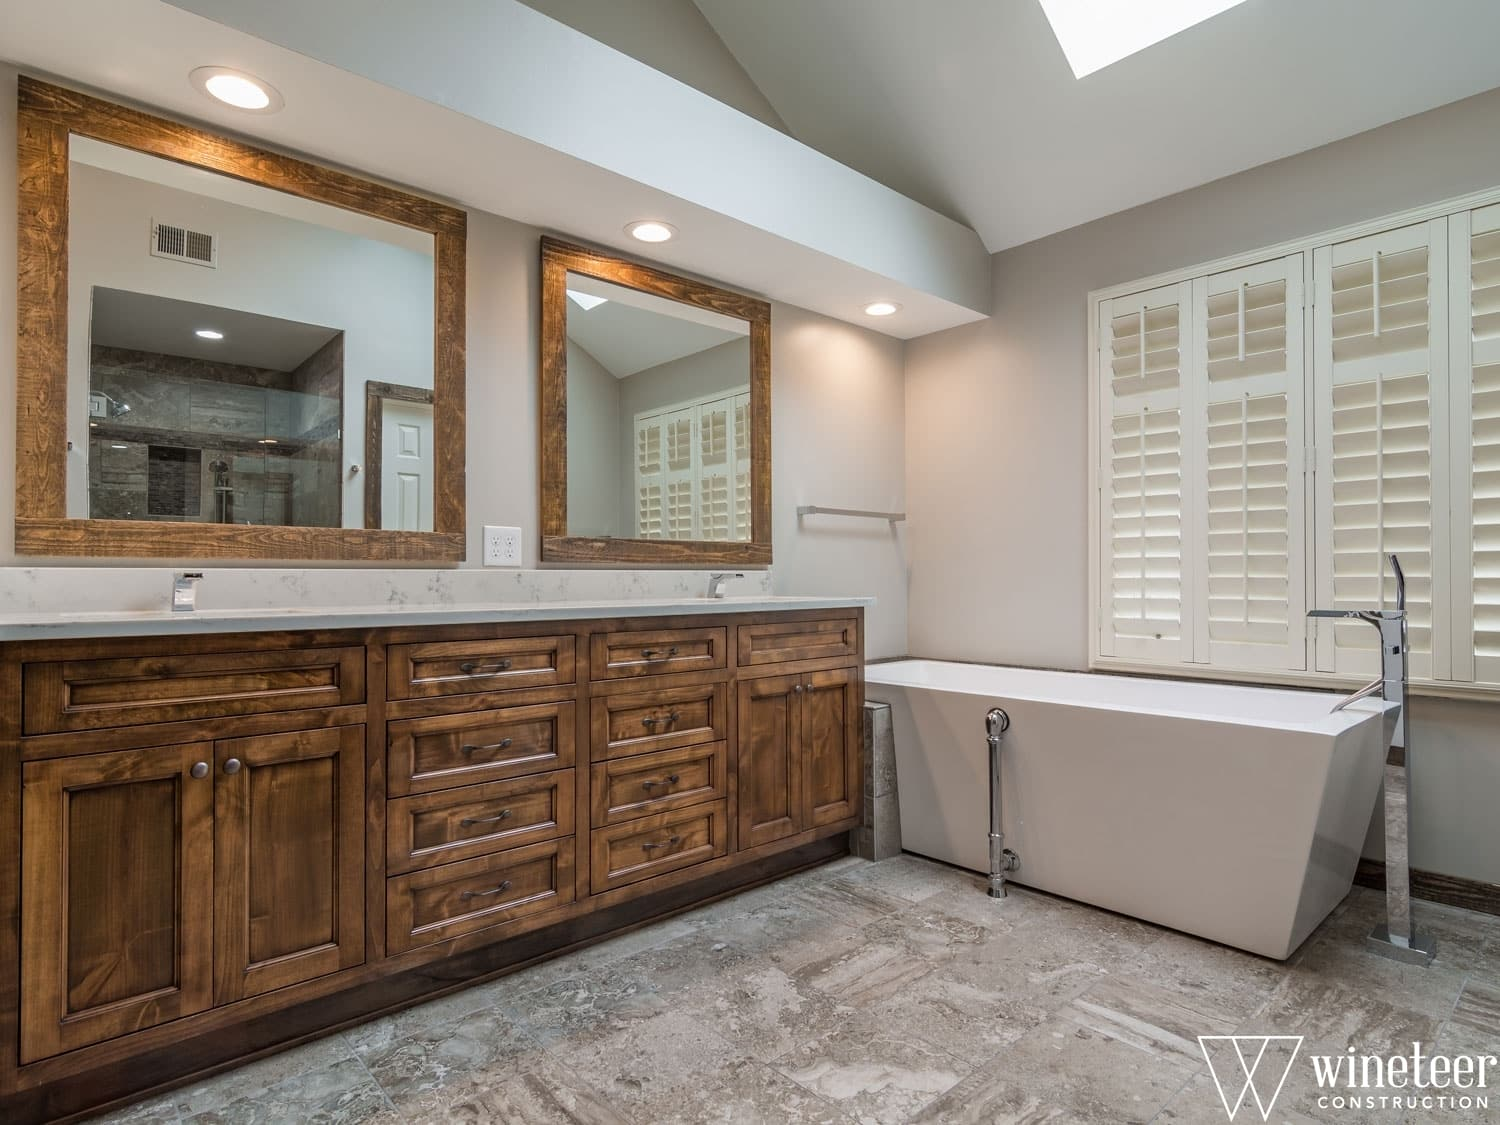 Gone Are The Days Of Cramped Bathrooms Complete With Questionable Features.  The Bathroom Is One Of The Most Used Places In The Home Where Comfort And  ...